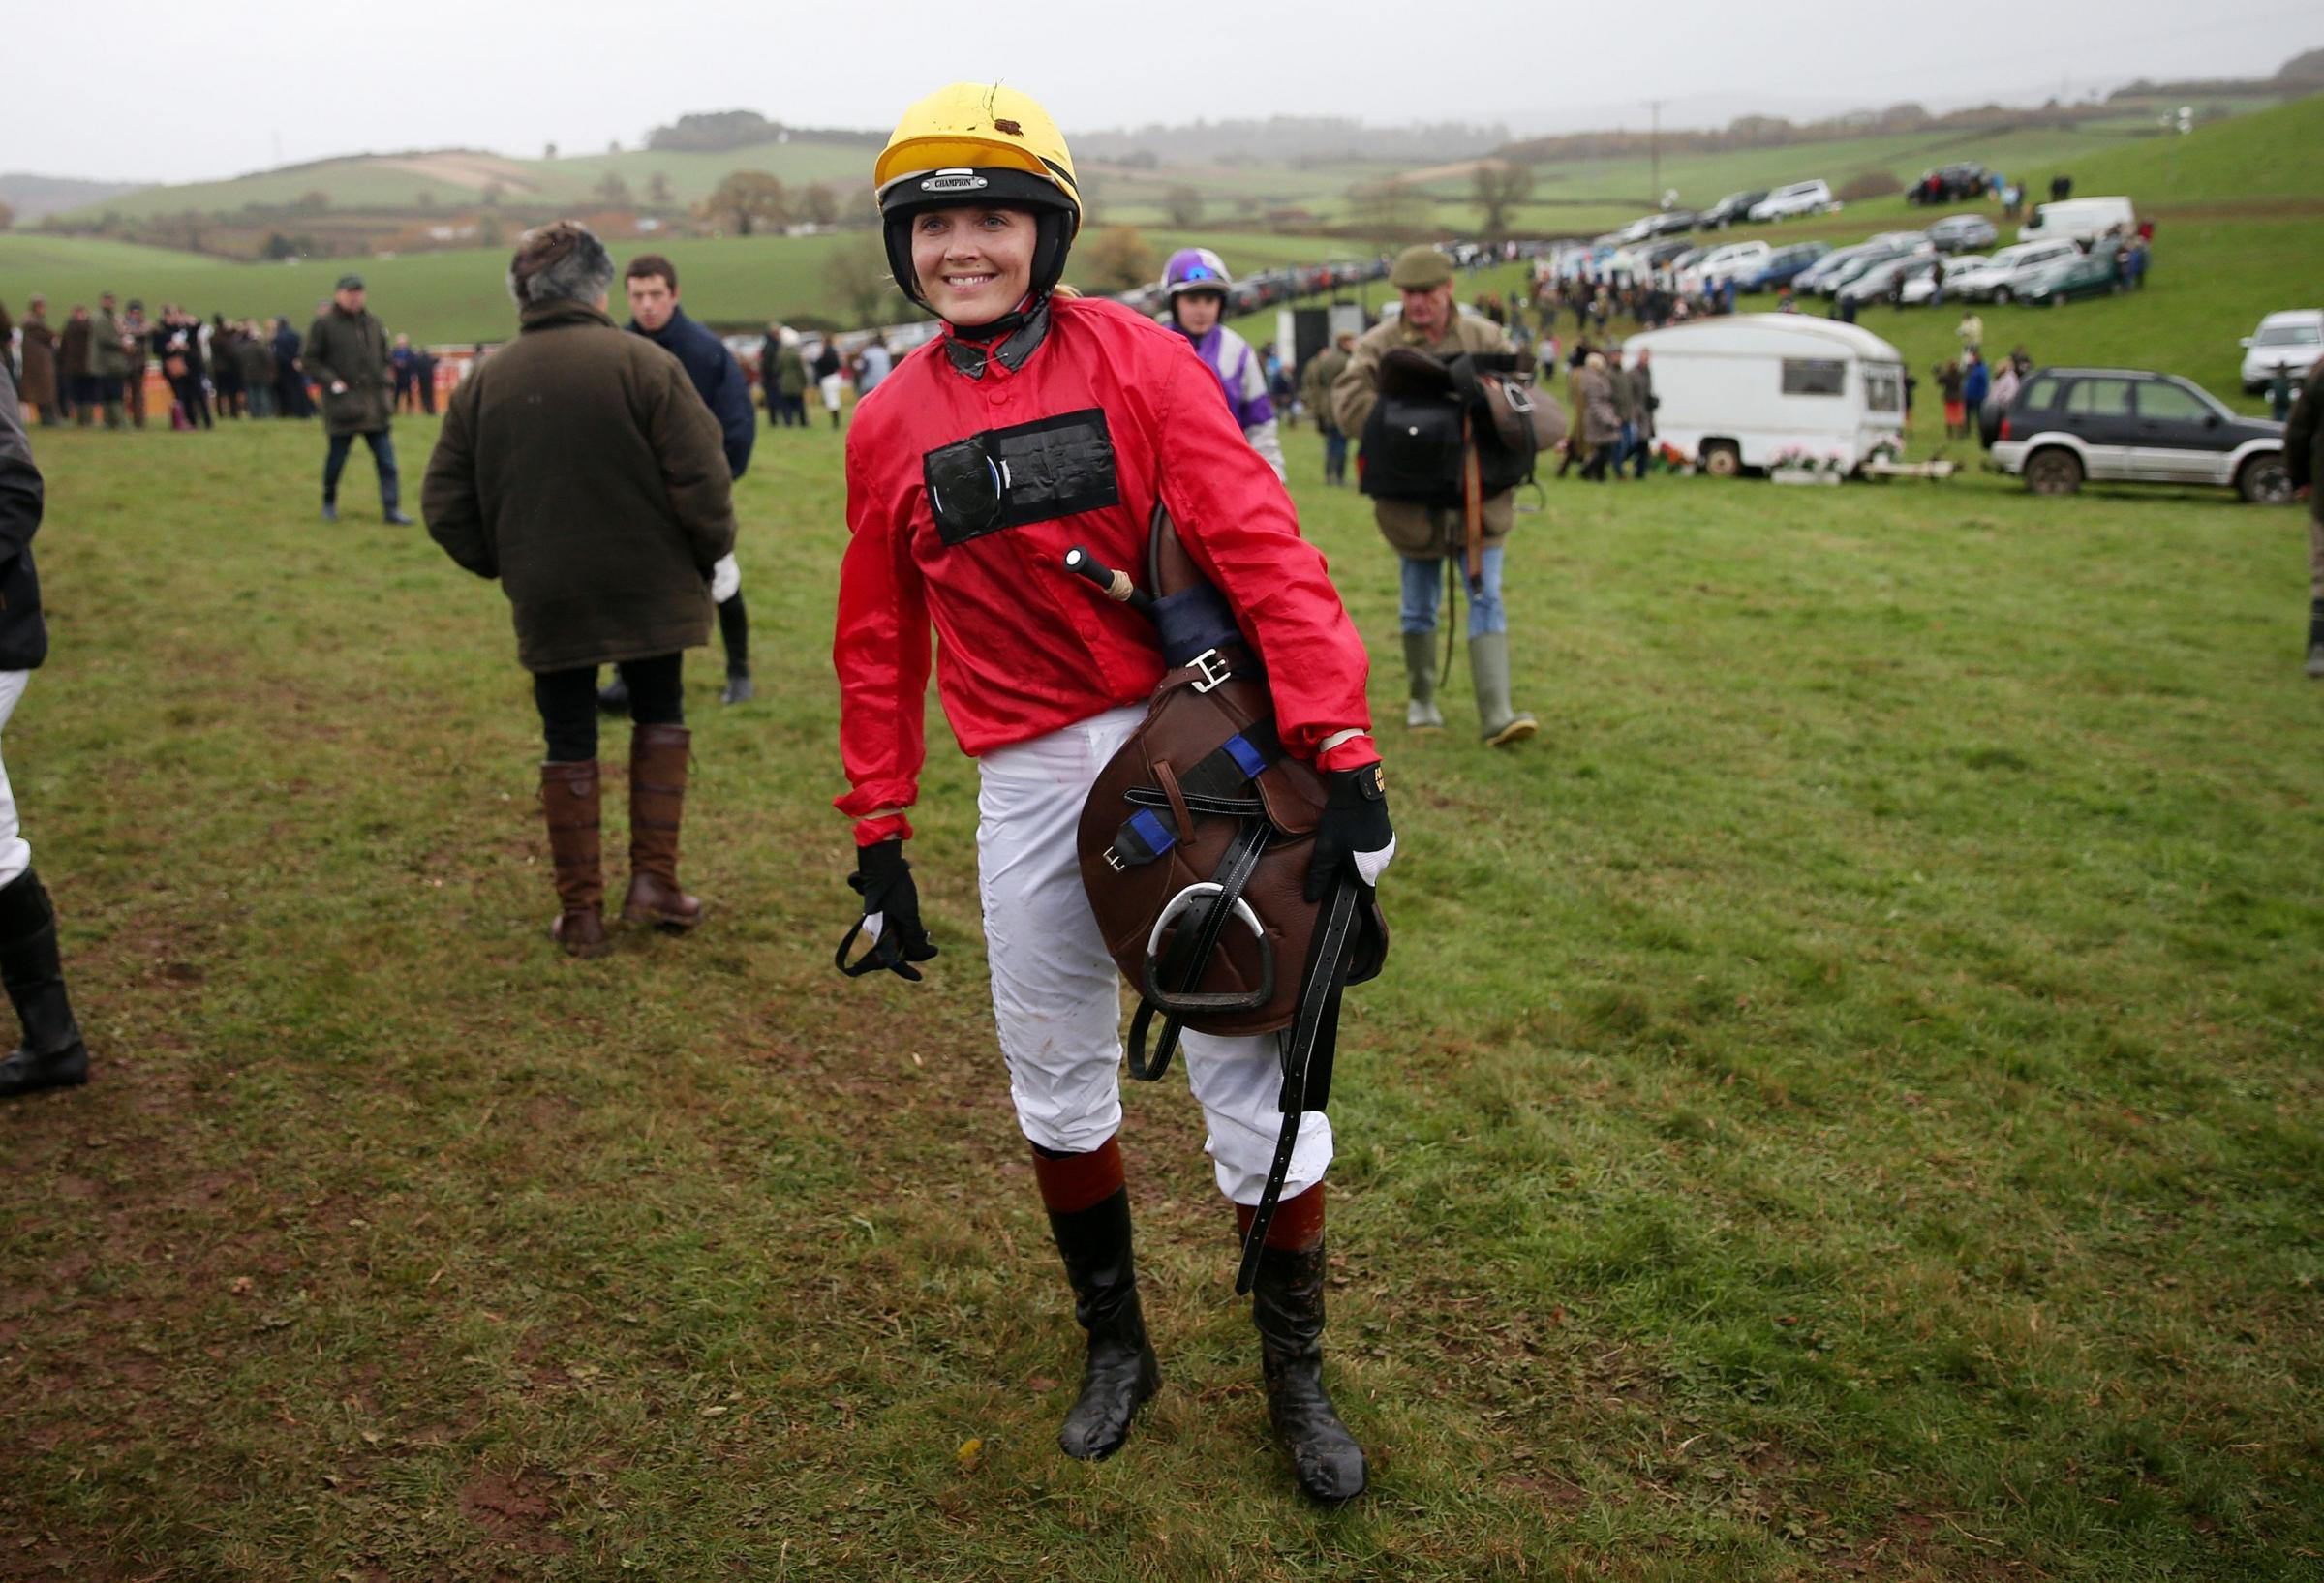 Victoria Pendleton could have two rides on Sunday